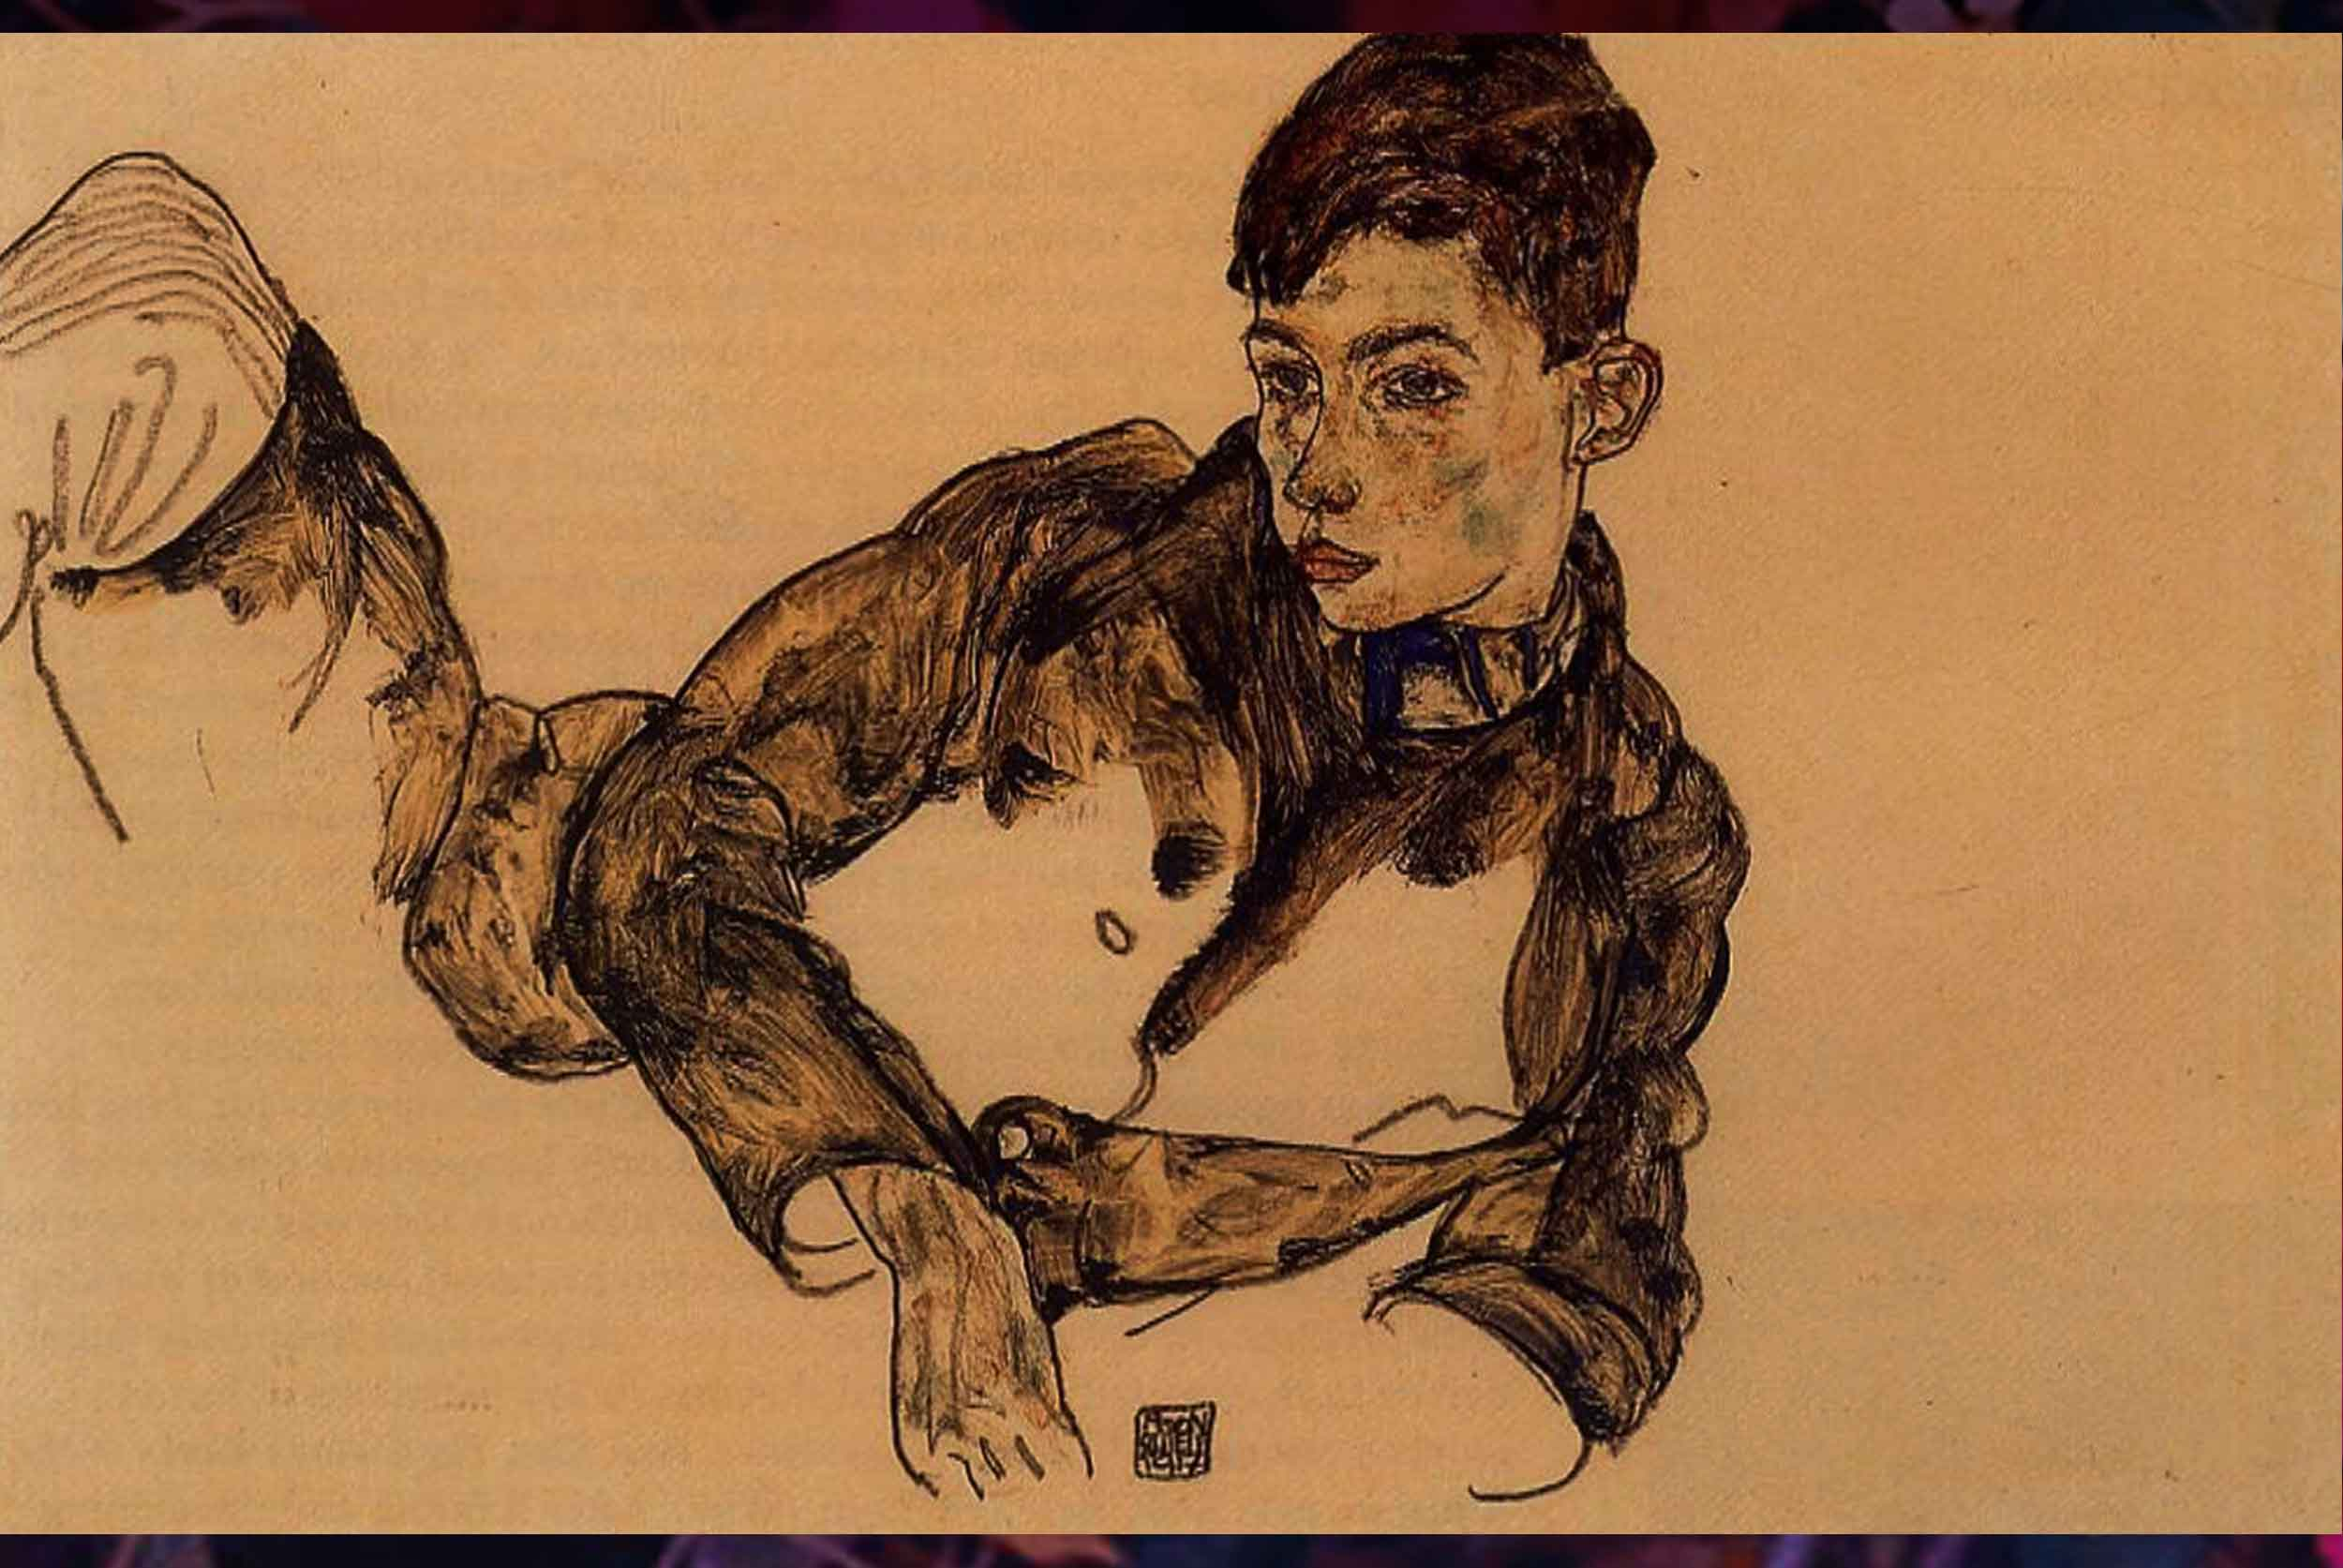 The Reclining Boy Leaning on His Elbow painting originally painted by Egon Schiele